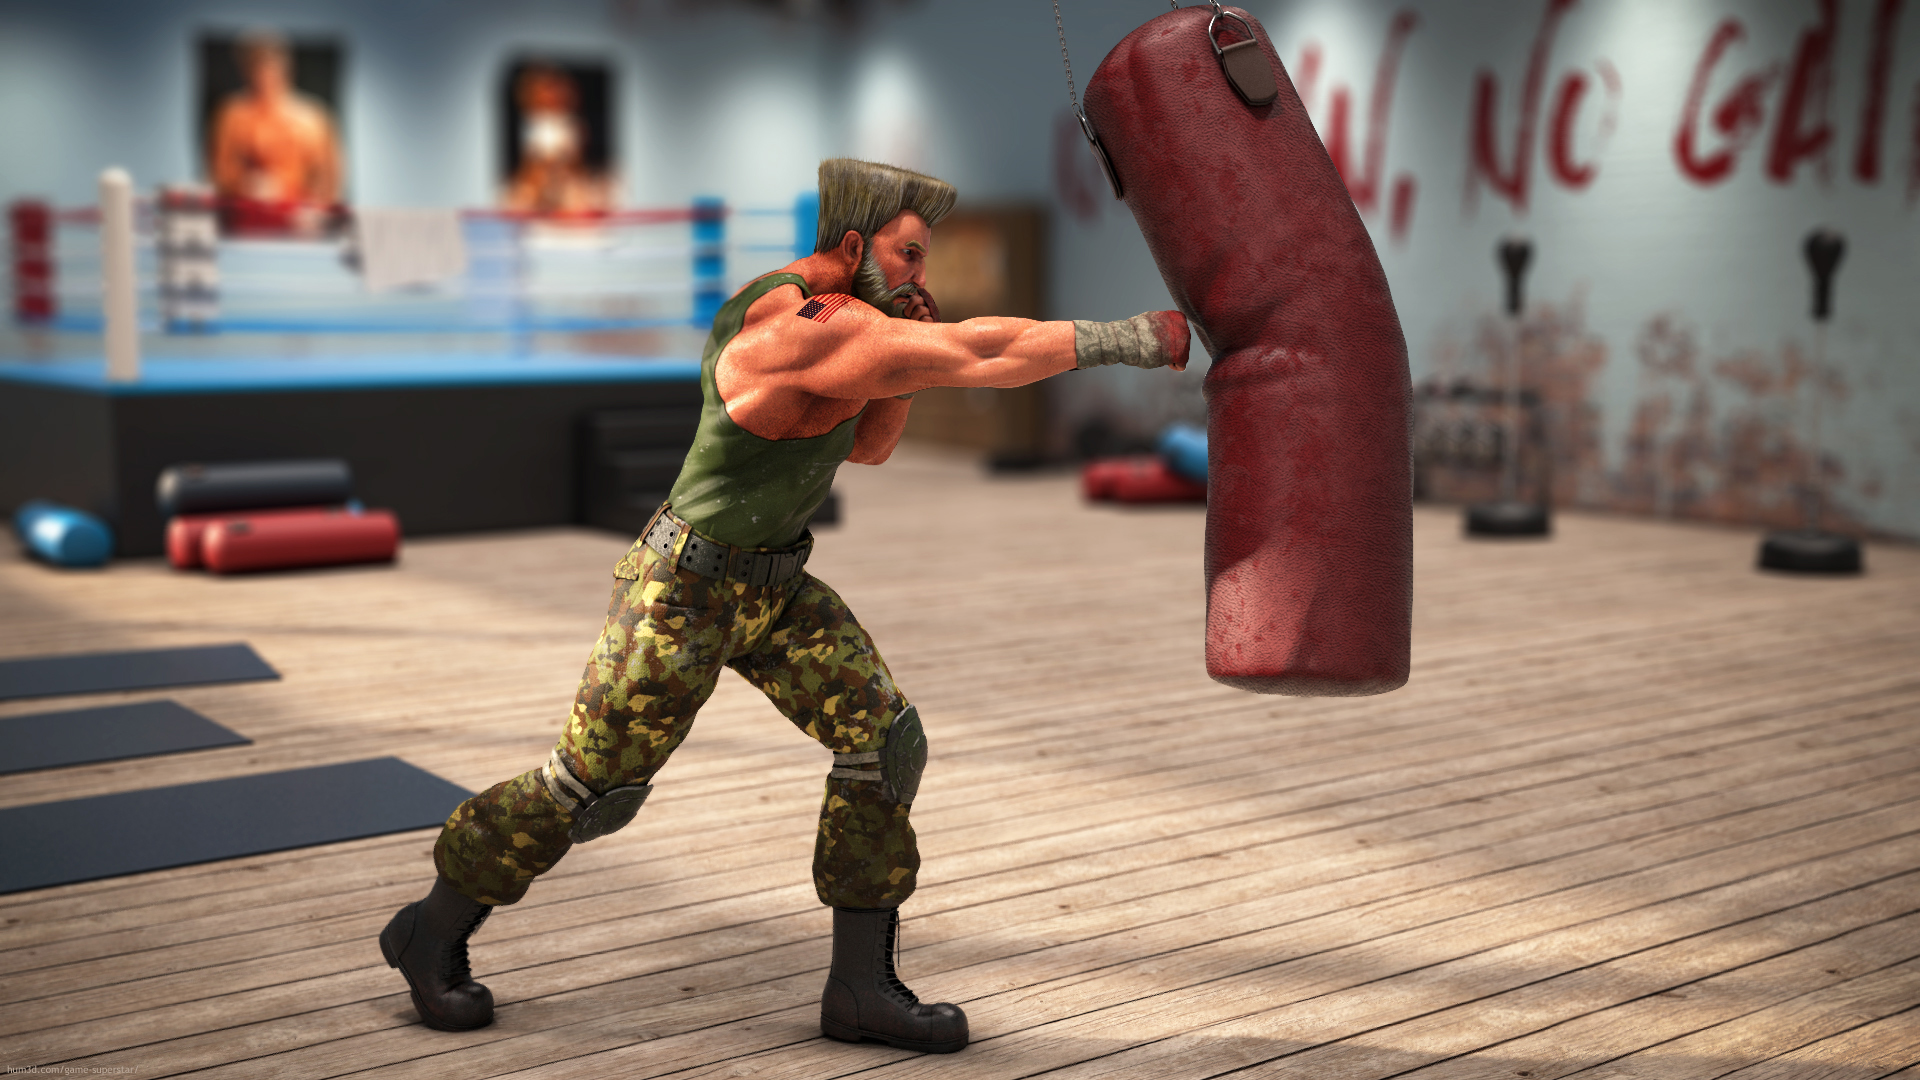 Legend of the Fighters 3d art